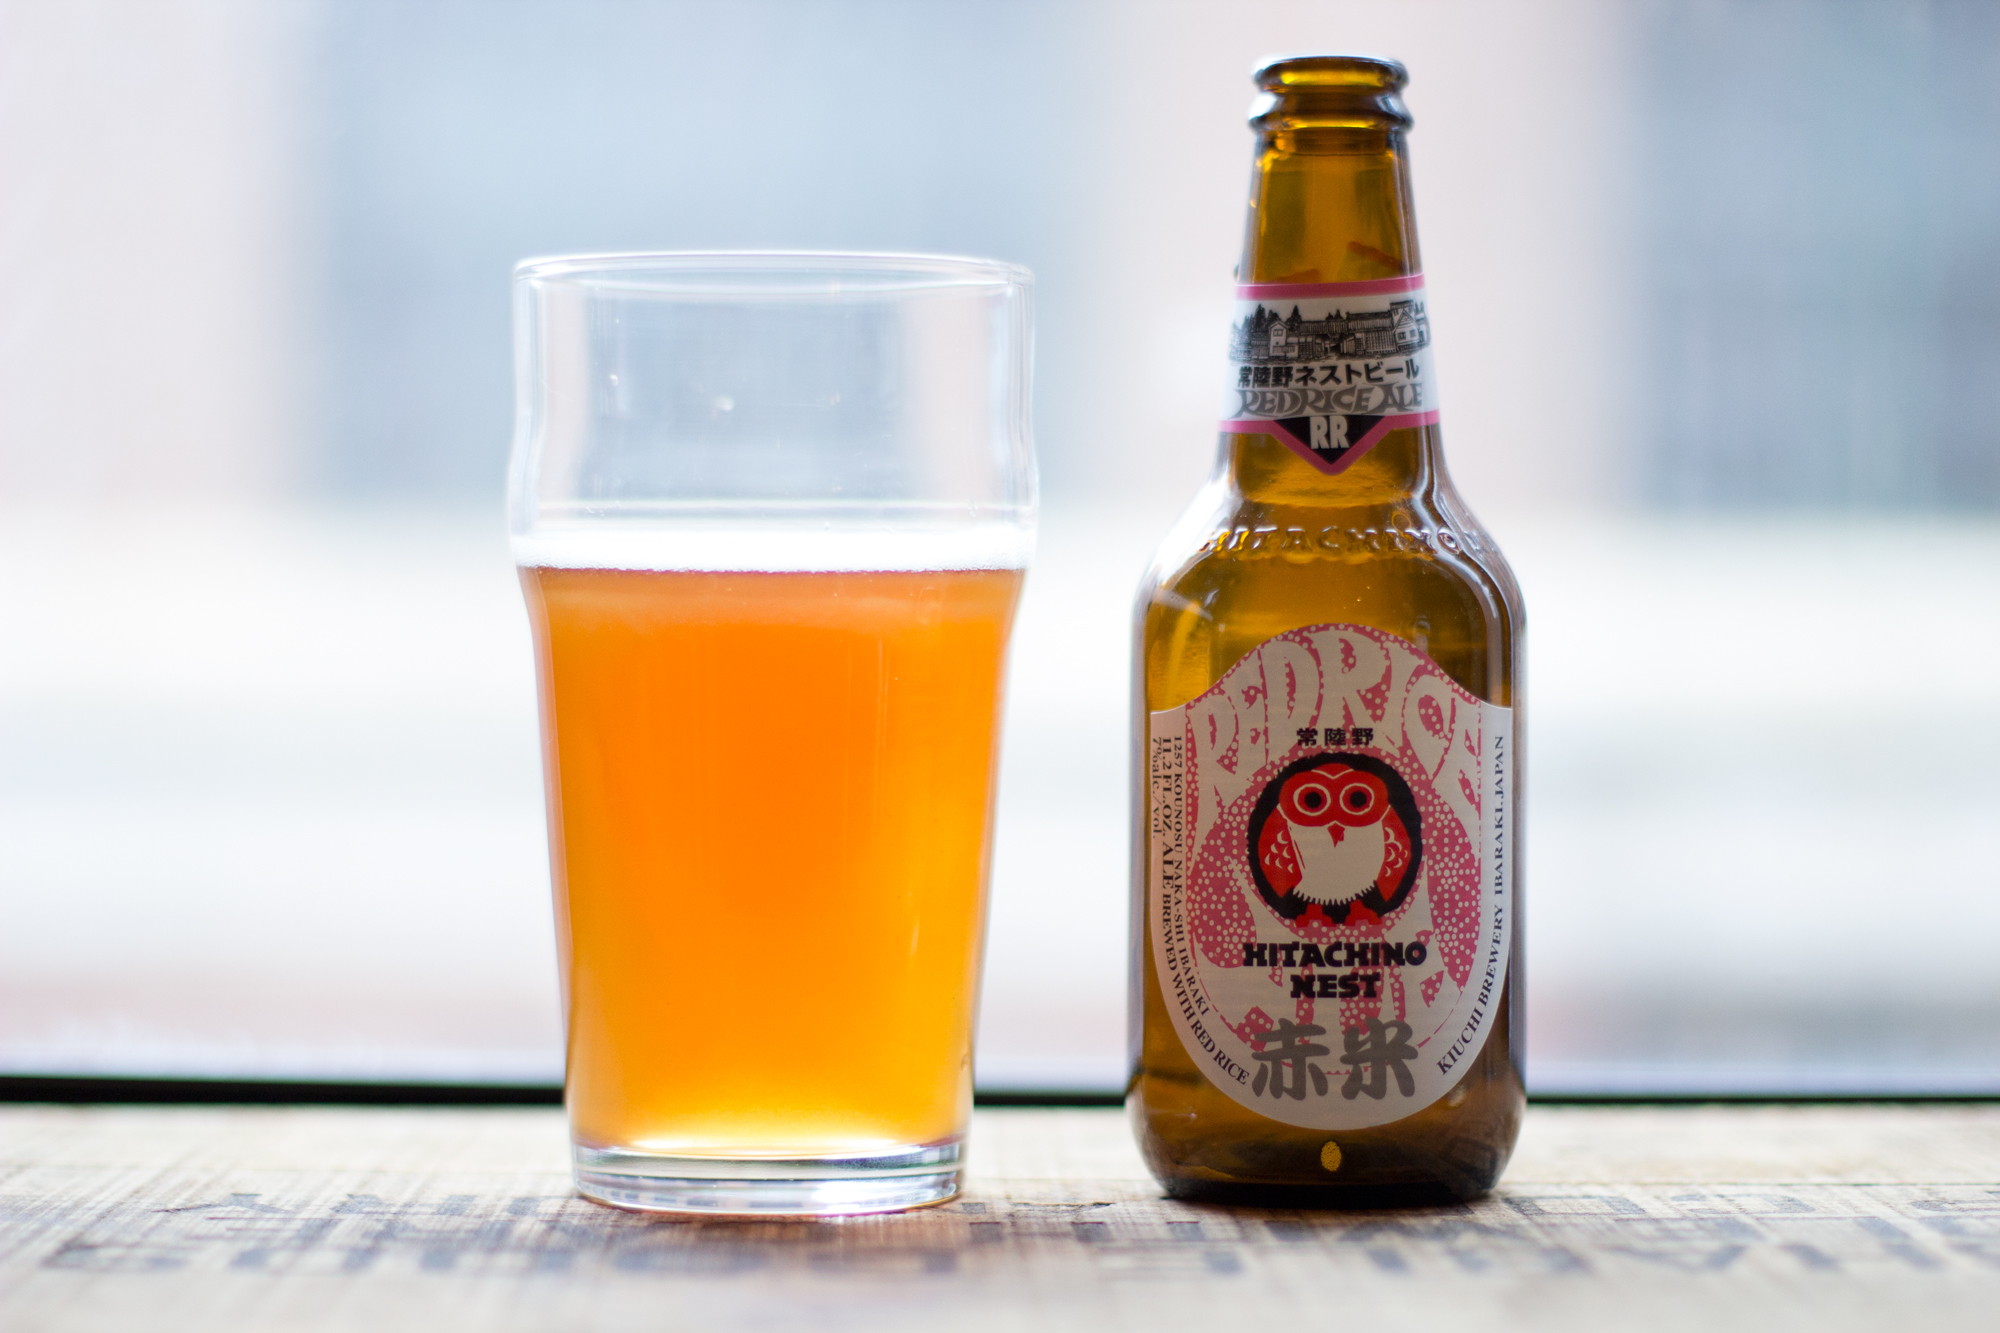 Hitachino's iconic owl logo caught our attention too. Hitachino is made by the Kiuchi brewery located in Naka, Japan. The owl is a symbol of good luck.